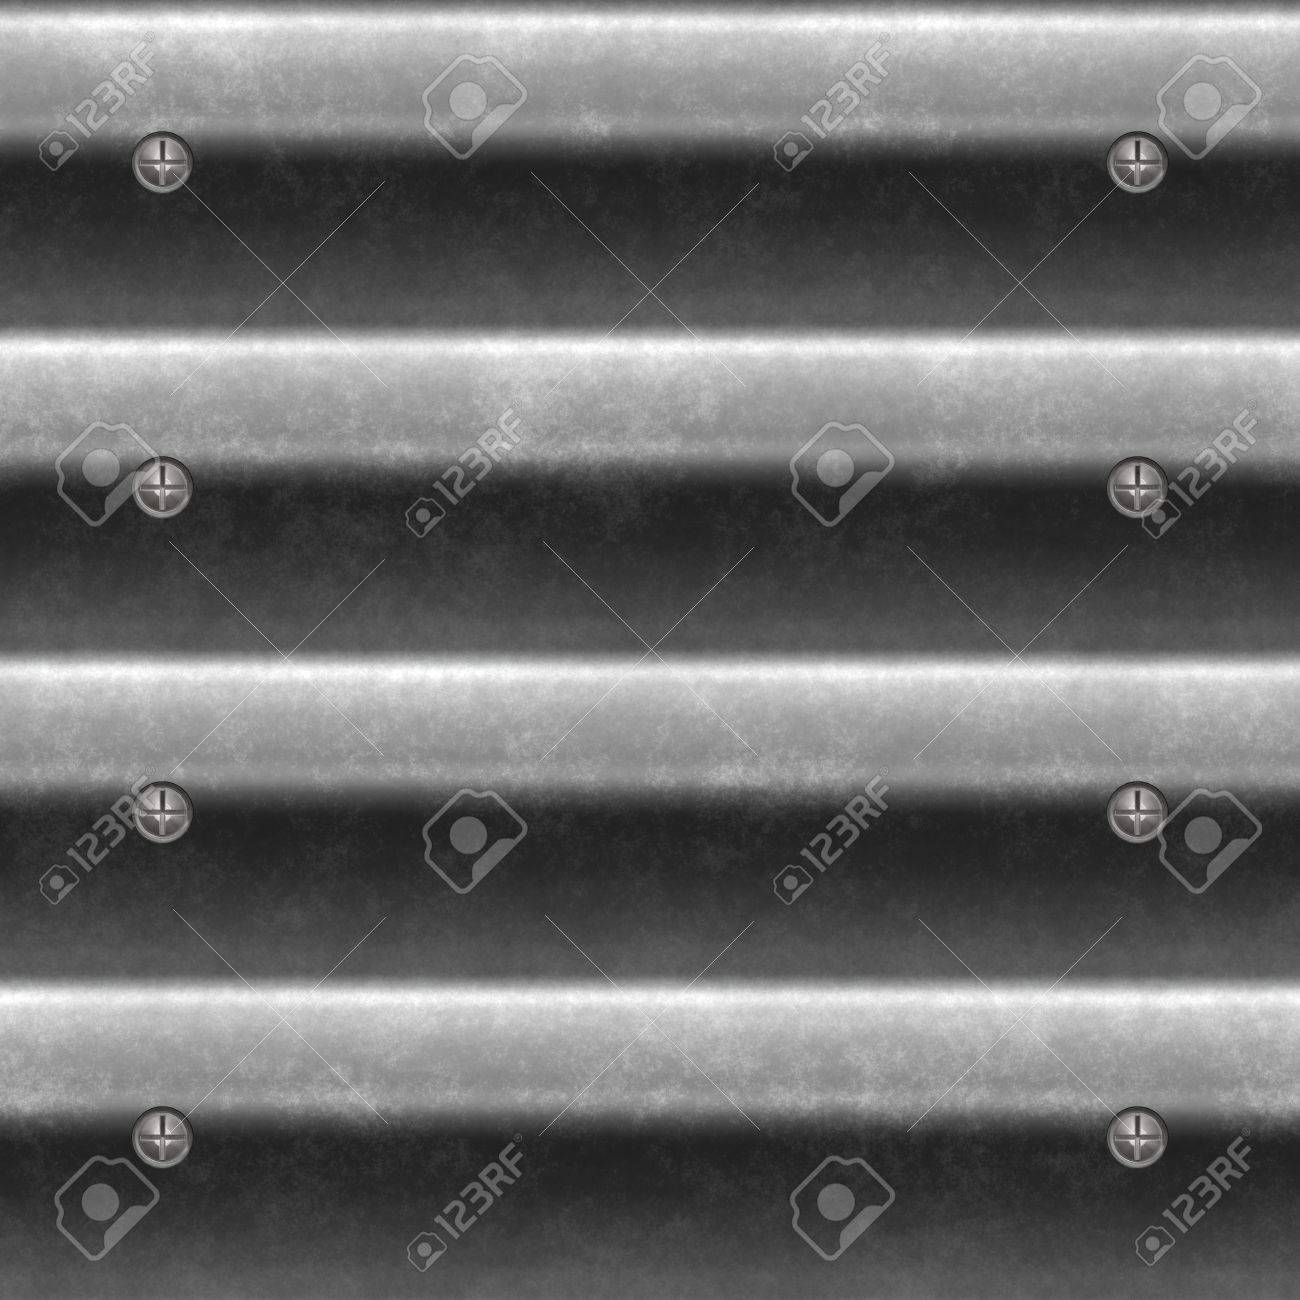 A corrugated metal texture that tiles seamlessly as a pattern.  Makes a great background or backdrop when tiled. Stock Photo - 8204658